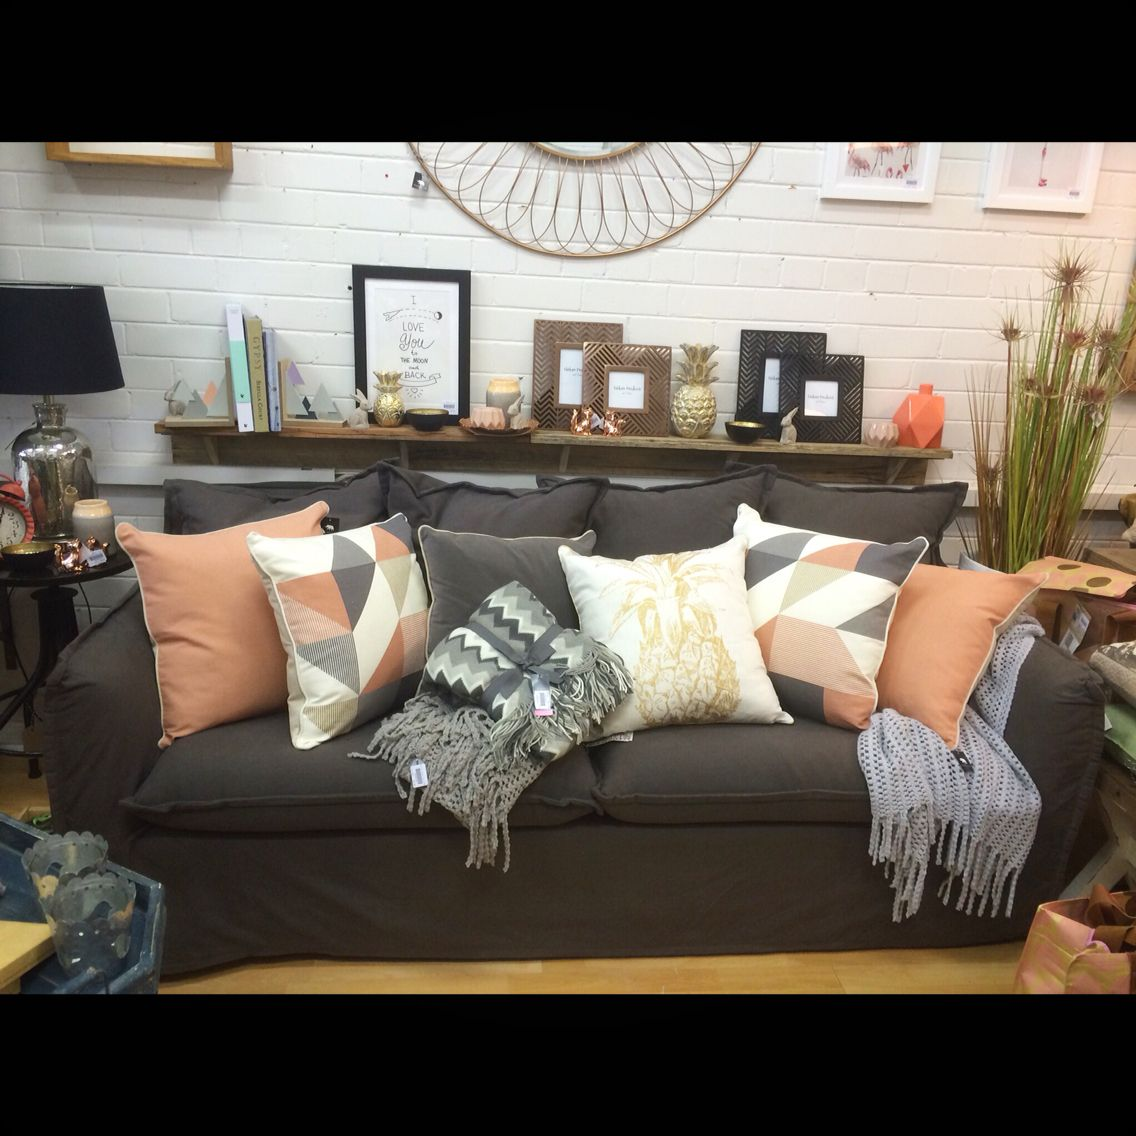 Our Amazing New Couch On Display With Coral Gold Copper